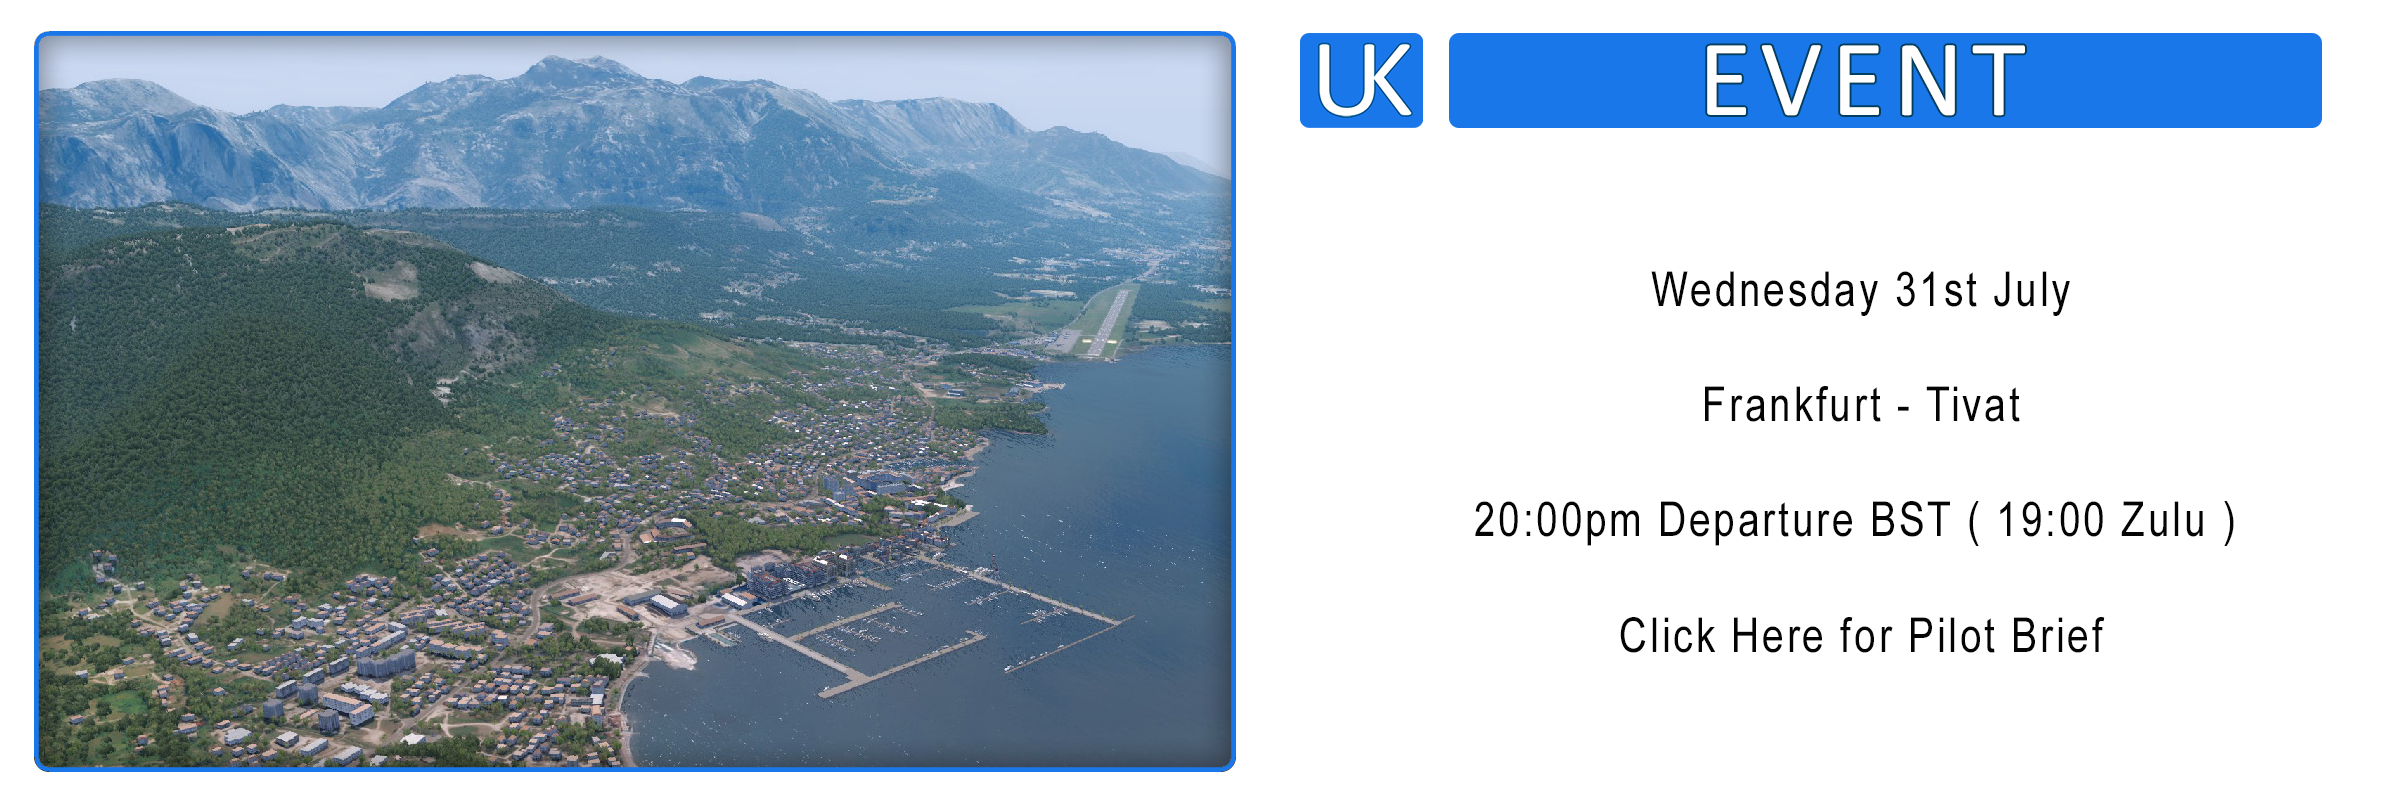 Group Flight – Frankfurt / Tivat – Wednesday 31st July